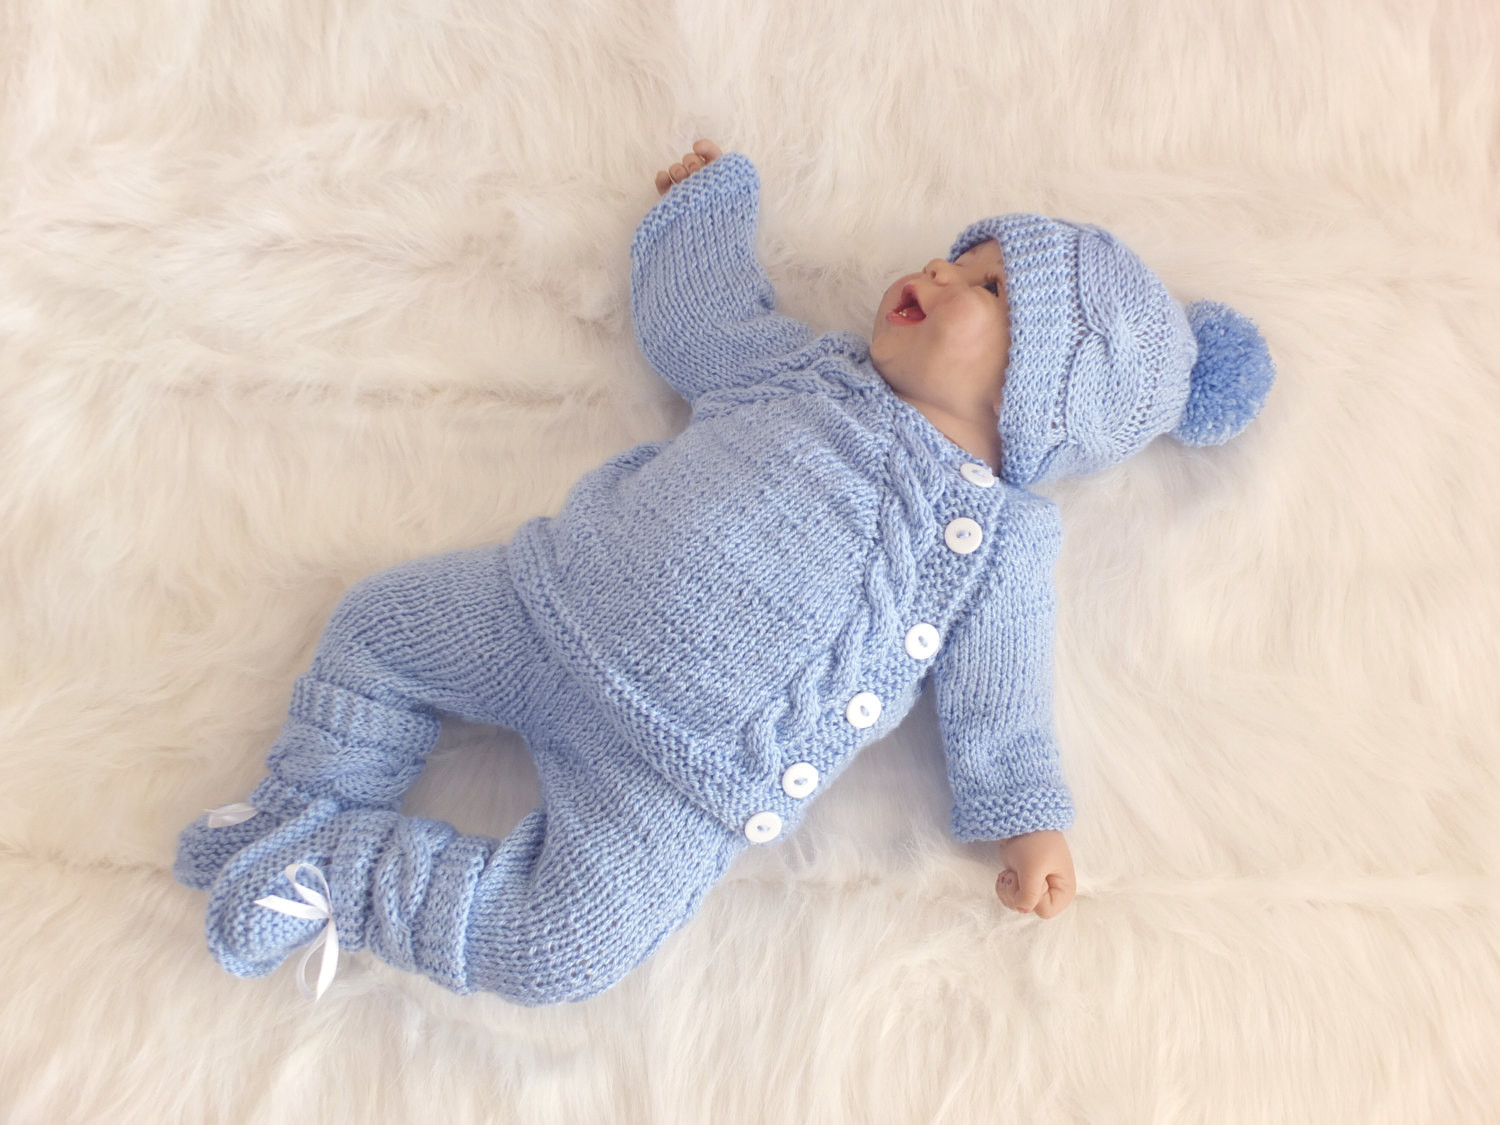 Knitted Baby Clothes Awesome Finding Your Baby the Ideal Clothes to Wear Knitted Baby Of Innovative 45 Images Knitted Baby Clothes